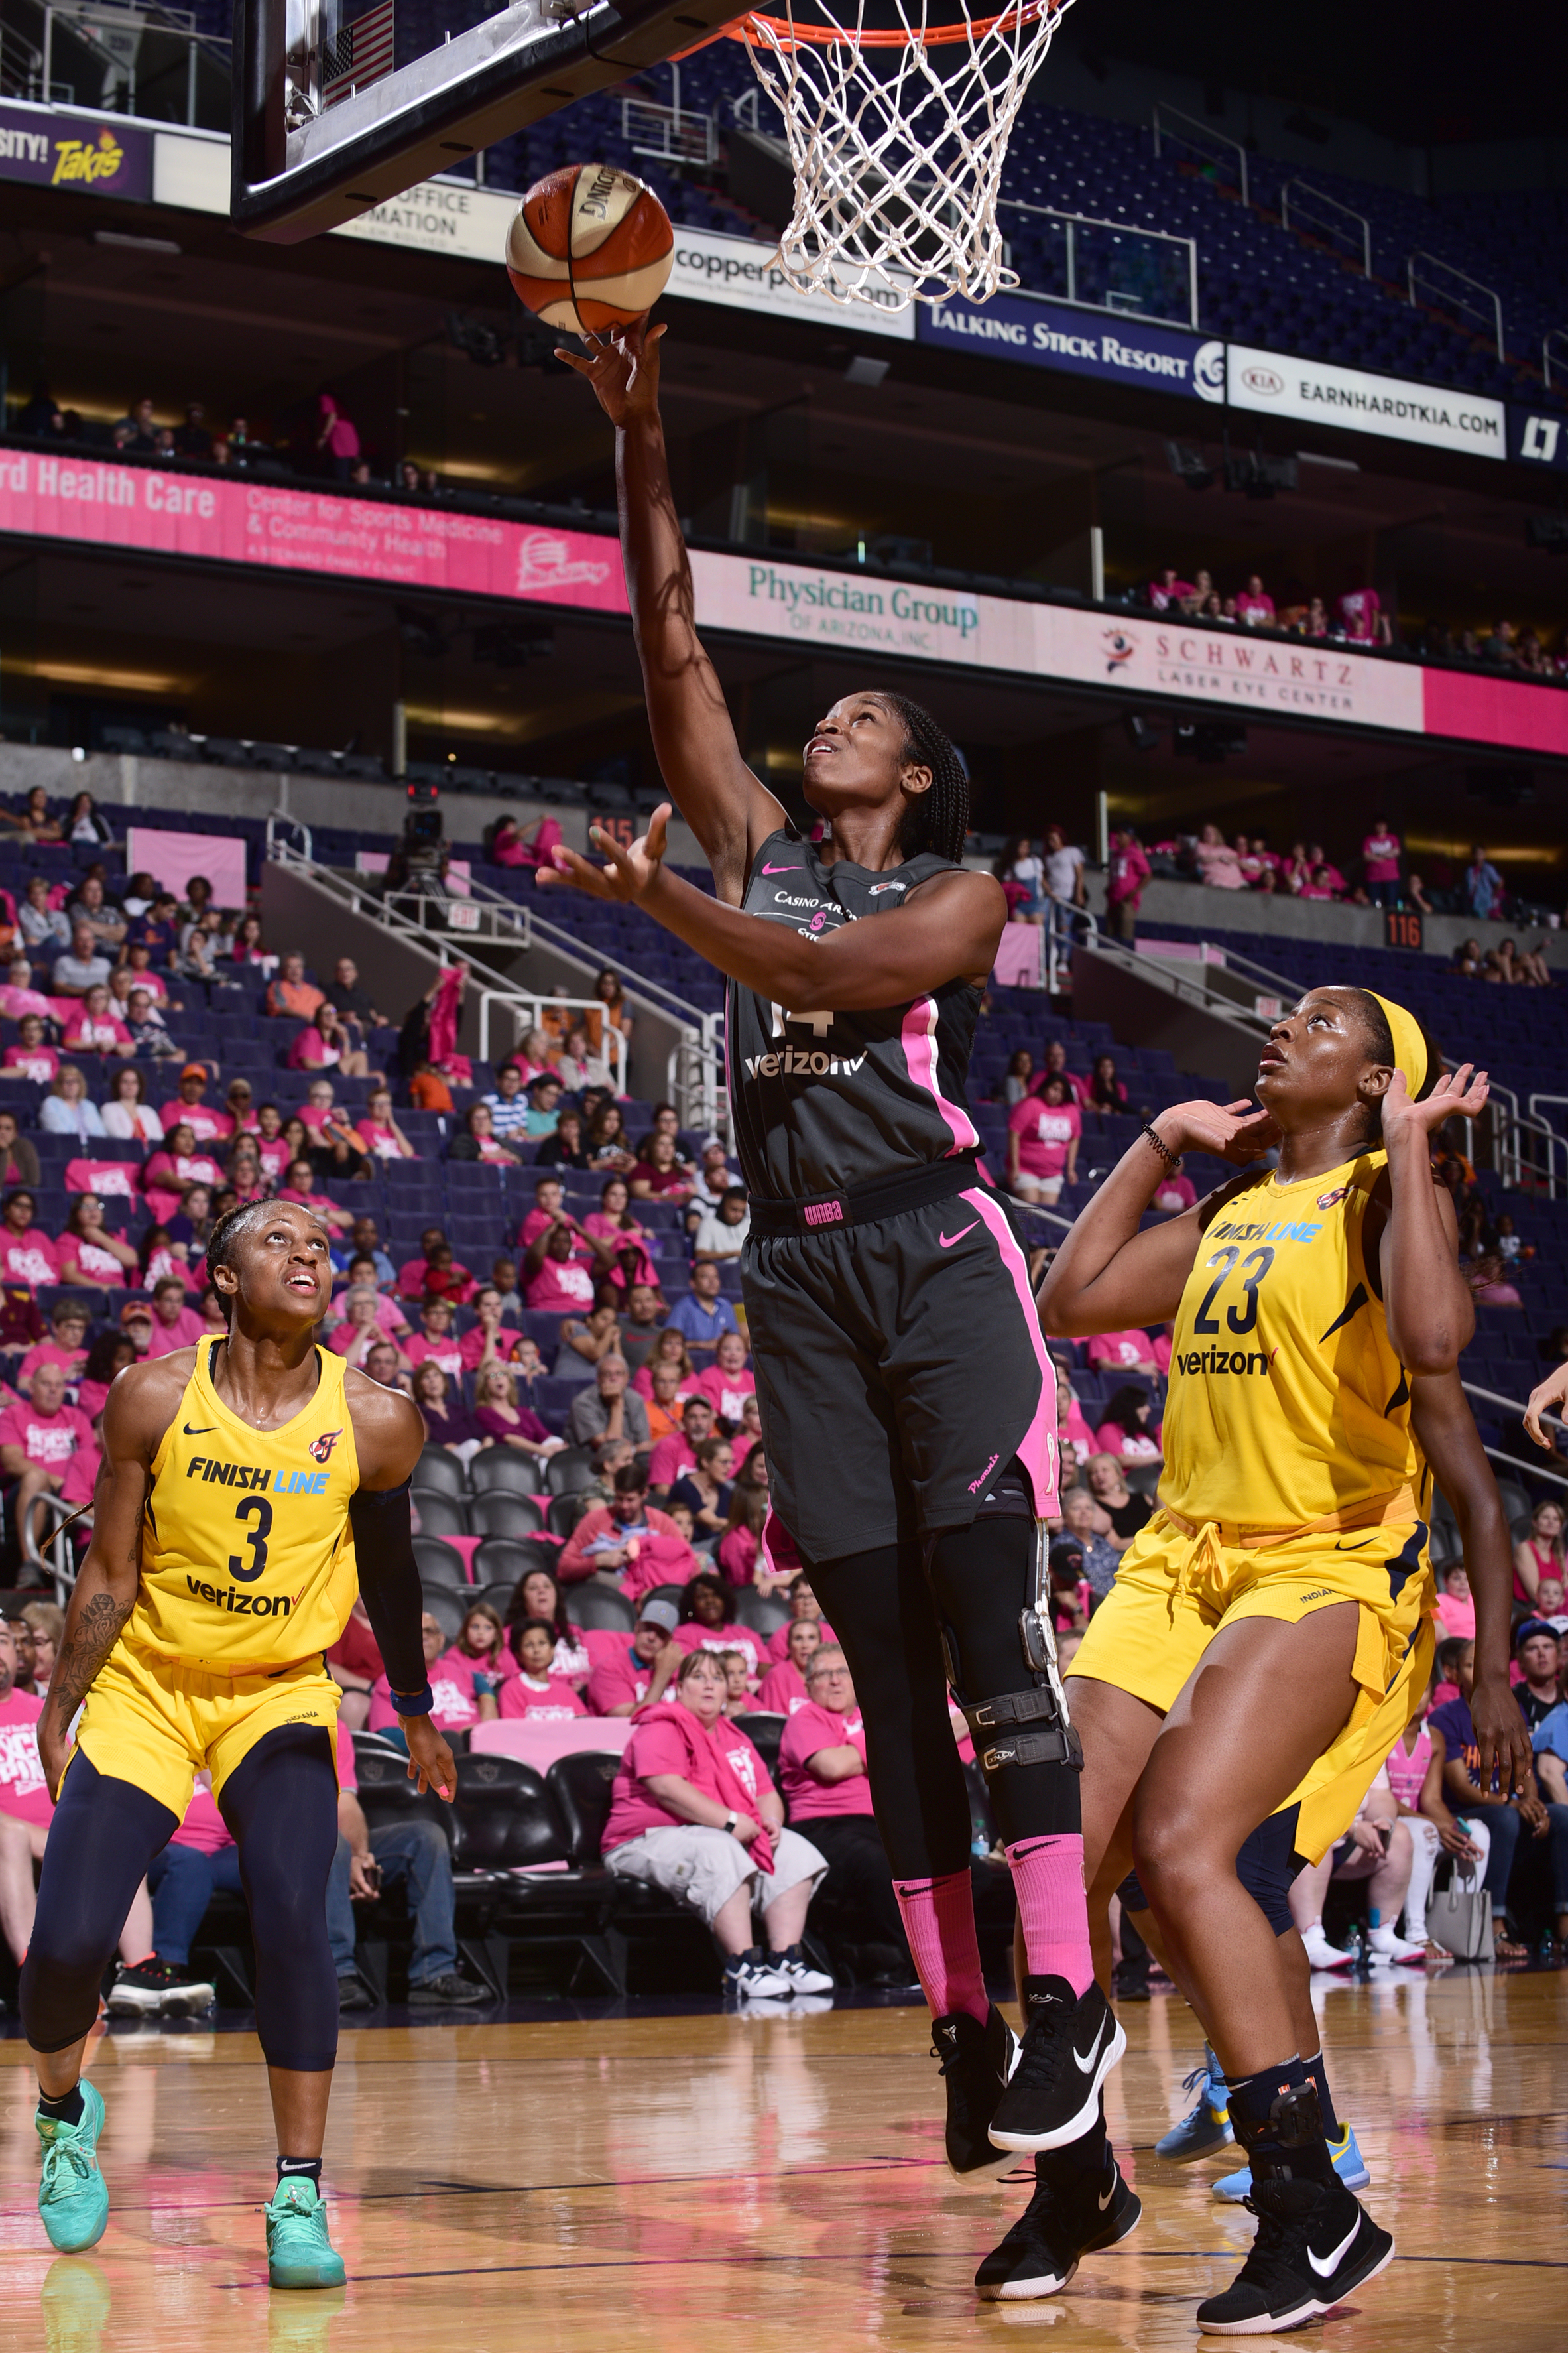 Get back into the kitchen': A WNBA roundtable on sexism in